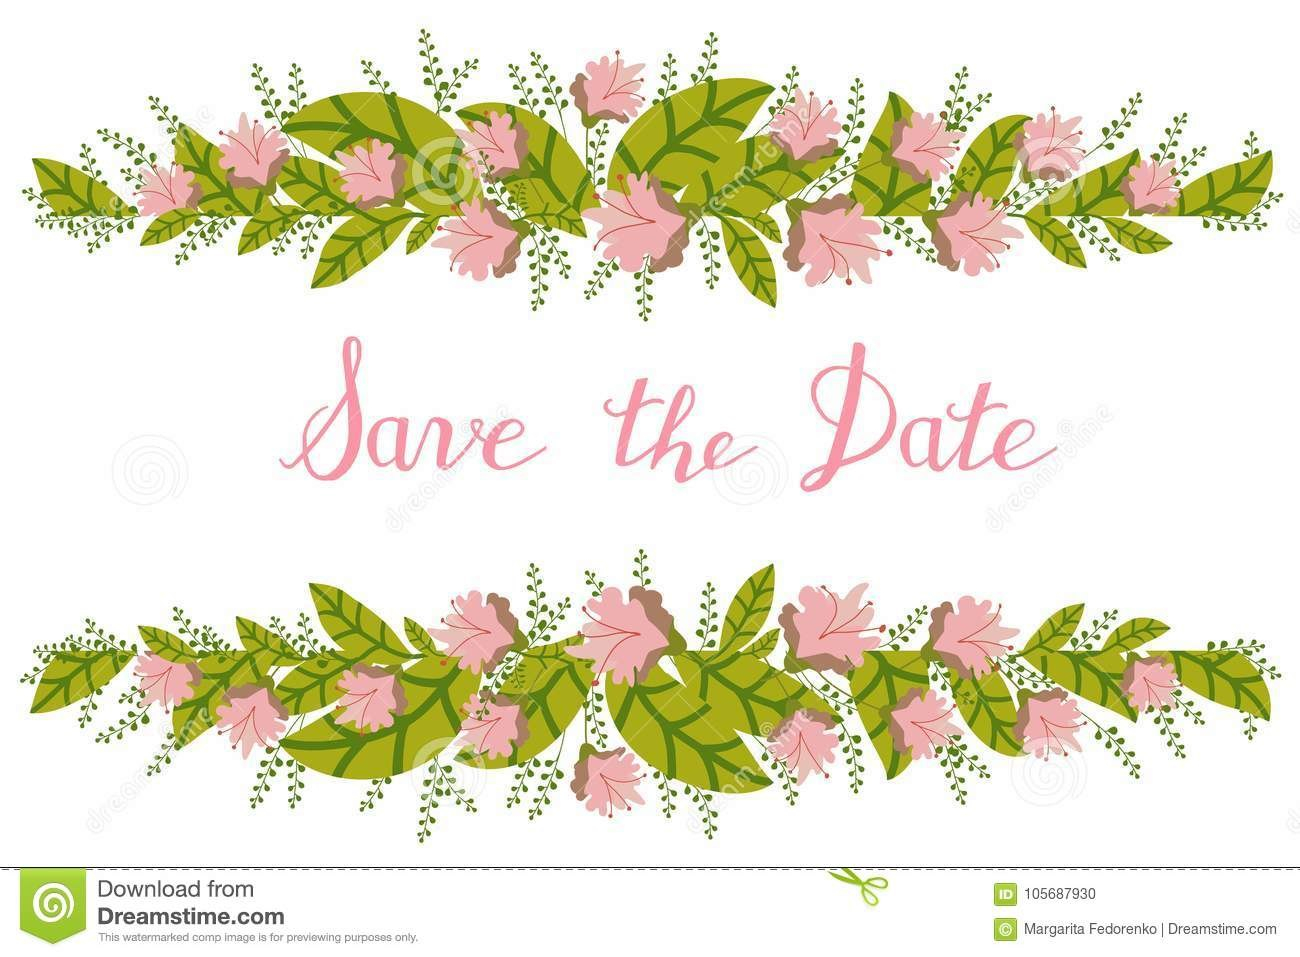 Flower Card Invitation Banner Template With Save The Date Title Pertaining To Save The Date Banner Template